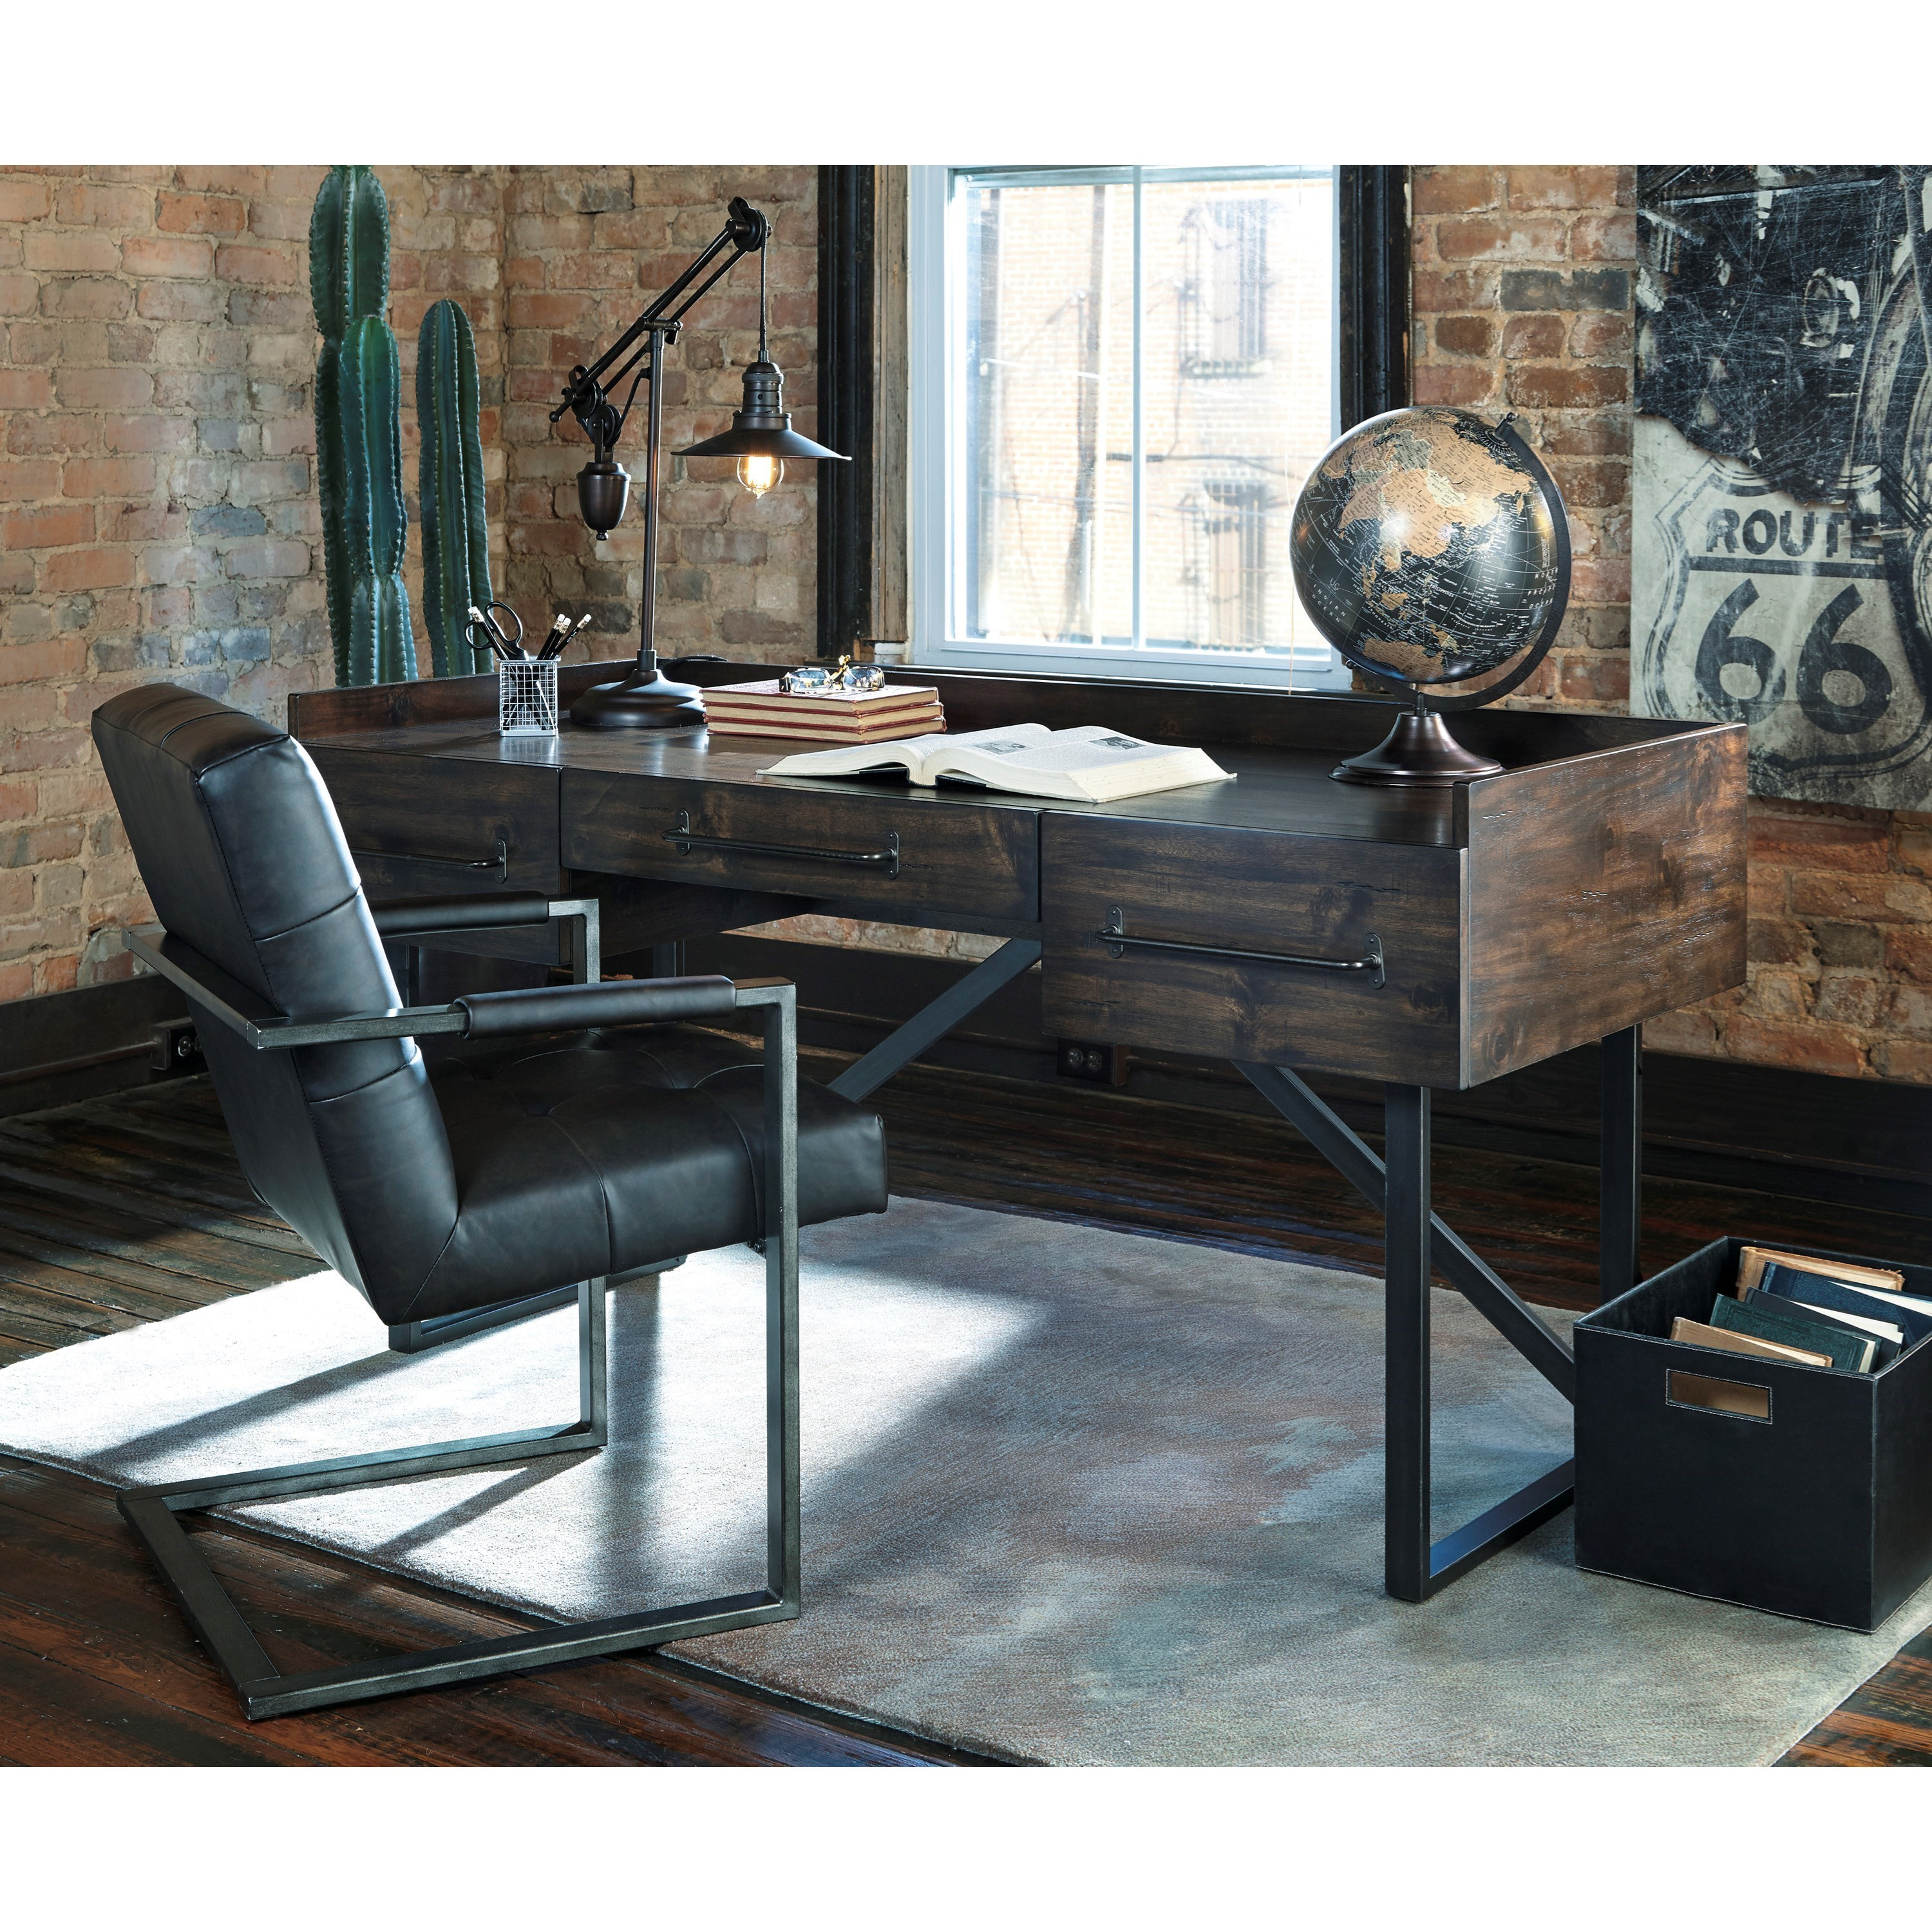 rustic desk home office. Signature Design By Ashley Starmore Modern Rustic/Industrial Home Office Desk With Steel Base Rustic